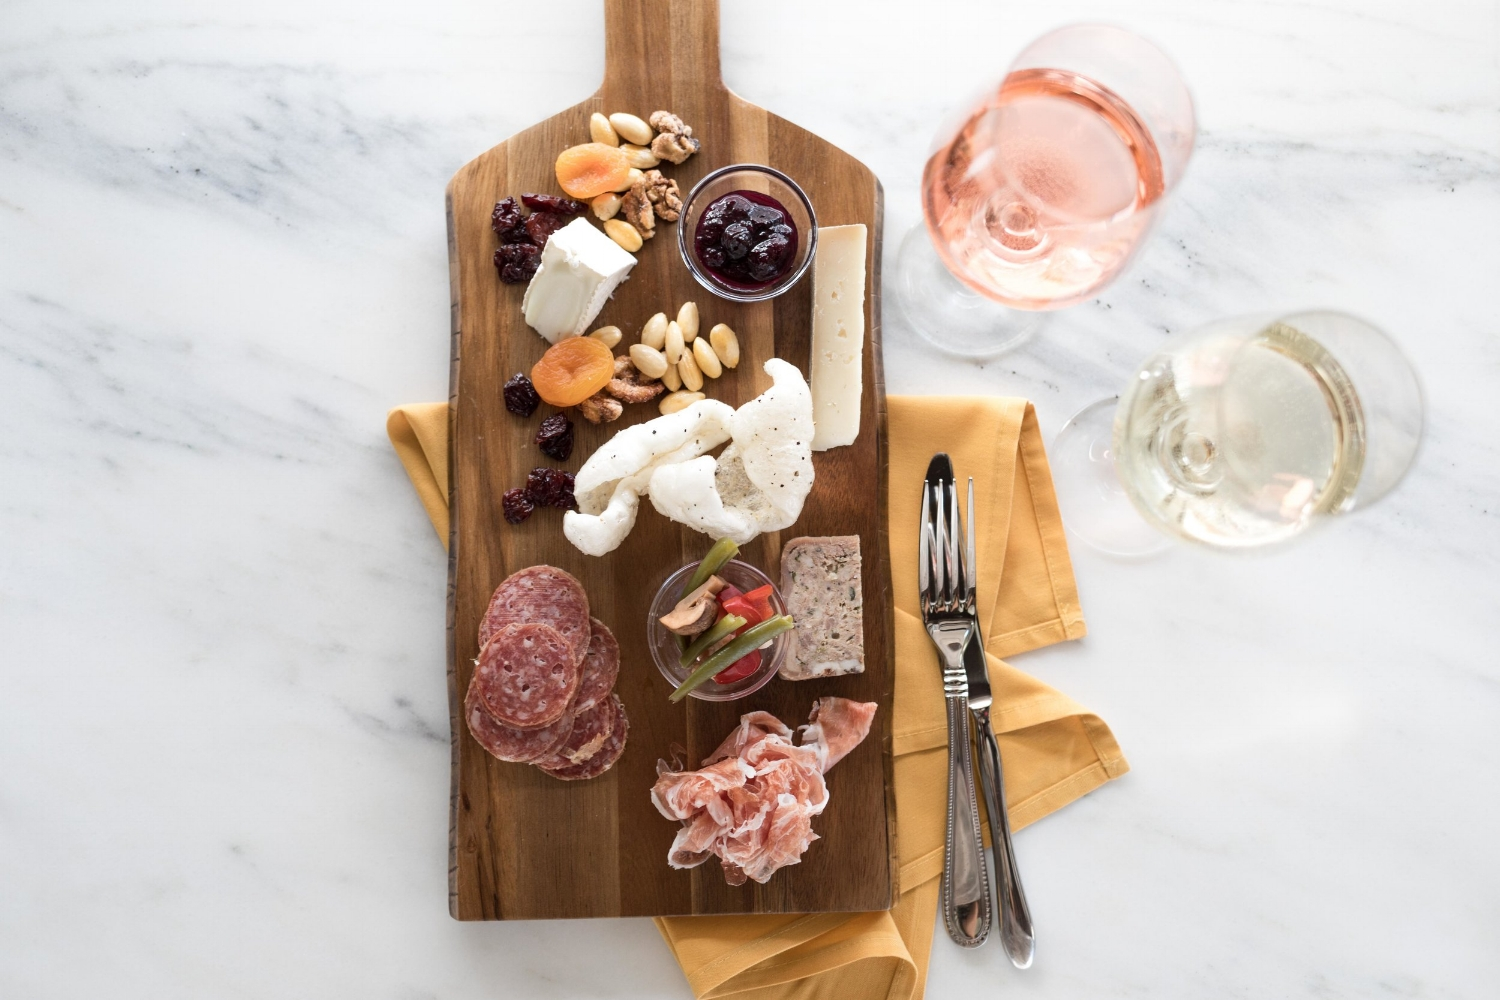 Jimena-Peck-Denver-Food-Photographer-The-Emporium-Kitchen-And-Wine-Market-Charcuterie-Board